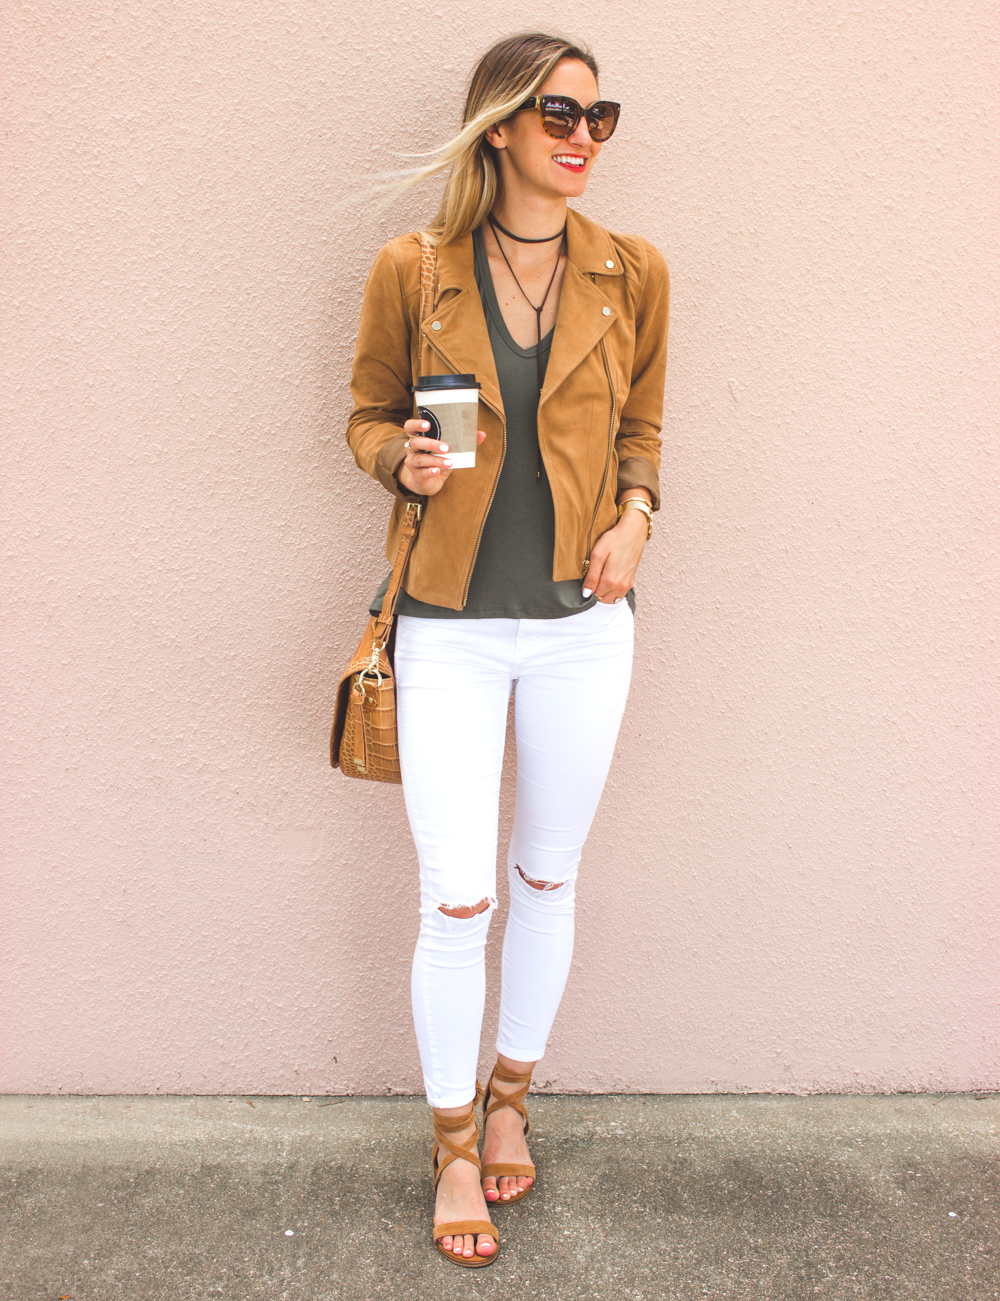 livvyland-blog-olivia-watson-boho-ootd-nordstrom-anniversary-sale-must-haves-what-to-buy-suede-tan-jacket-fall-summer-outfit-cluse-gold-watch-2